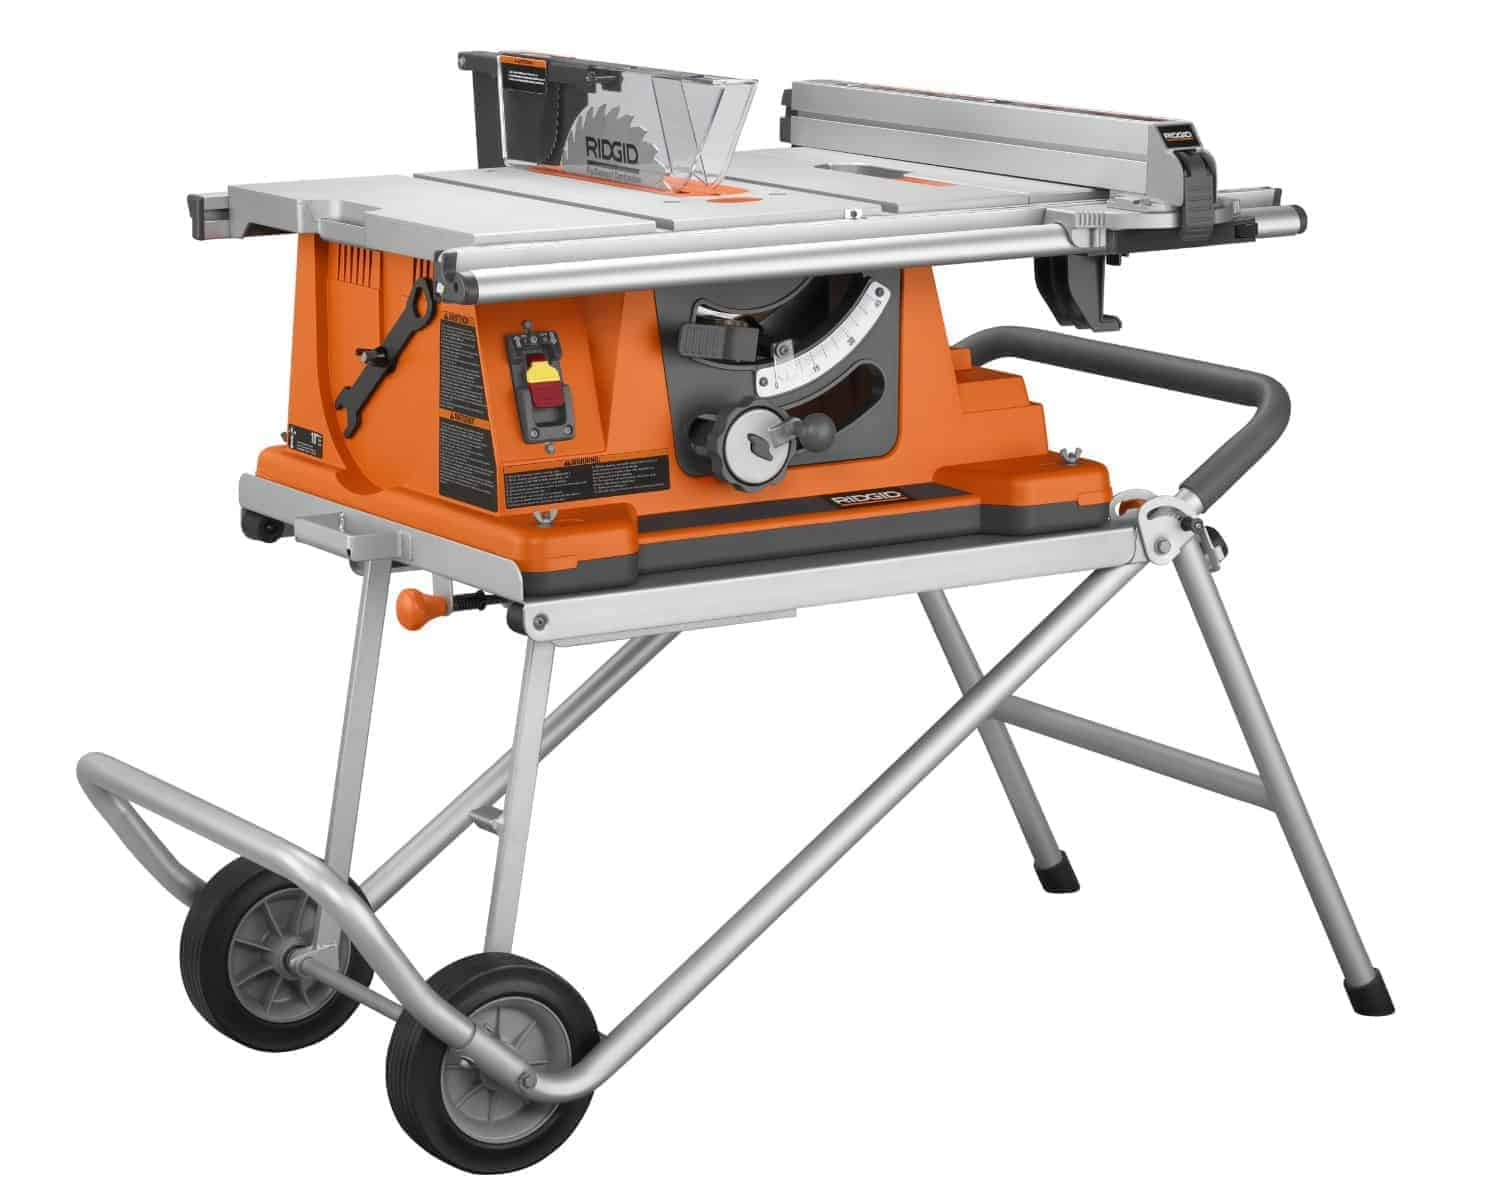 Ridgid R4510 Heavy Duty Table Saw Review Us80